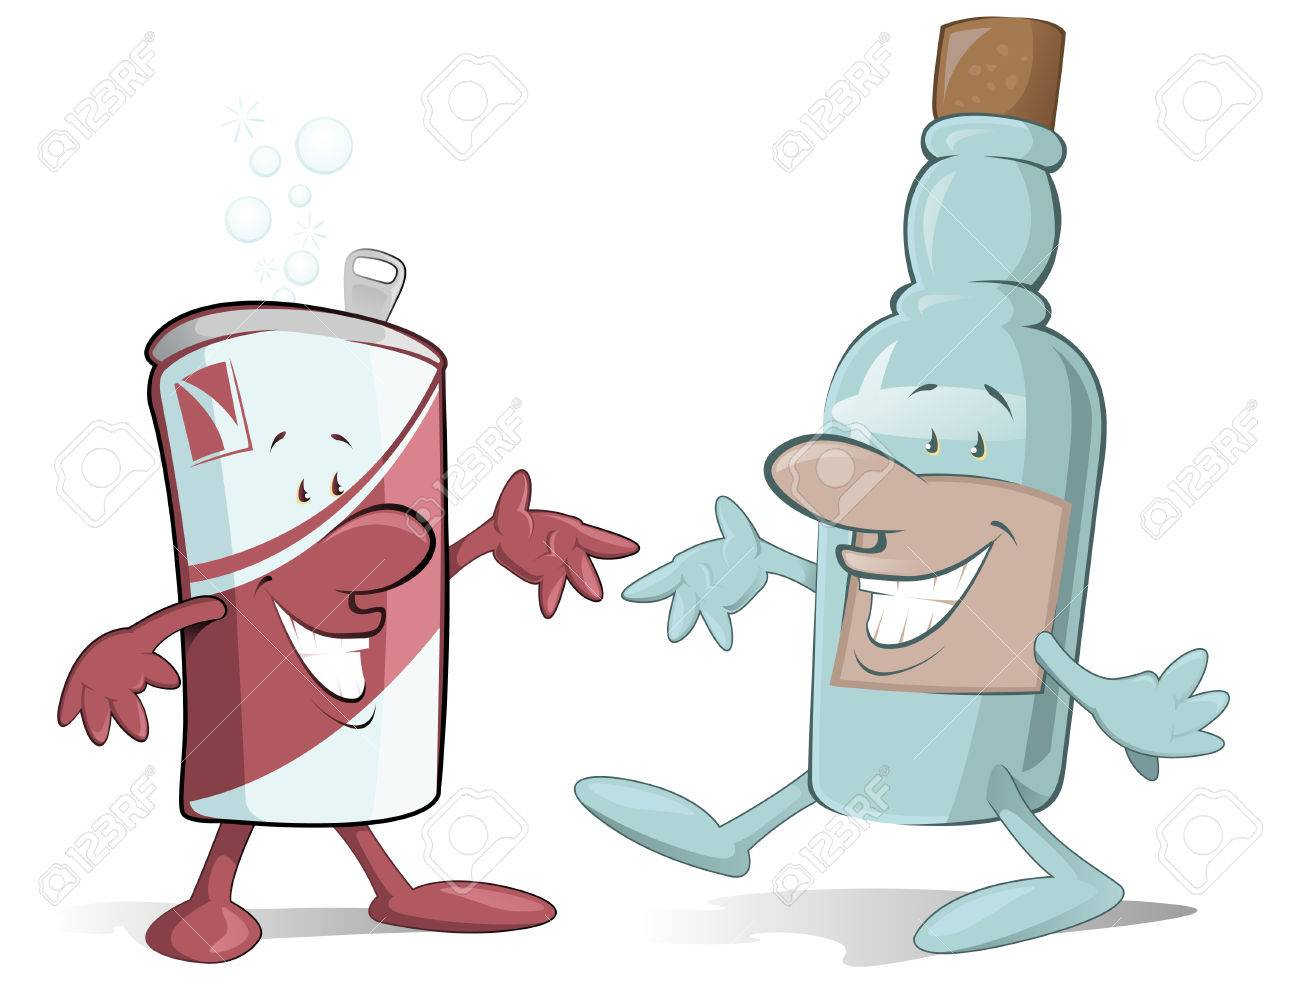 Cartoon beer Can and Booze Bootle characters off to have a party Stock Vector - 7927727